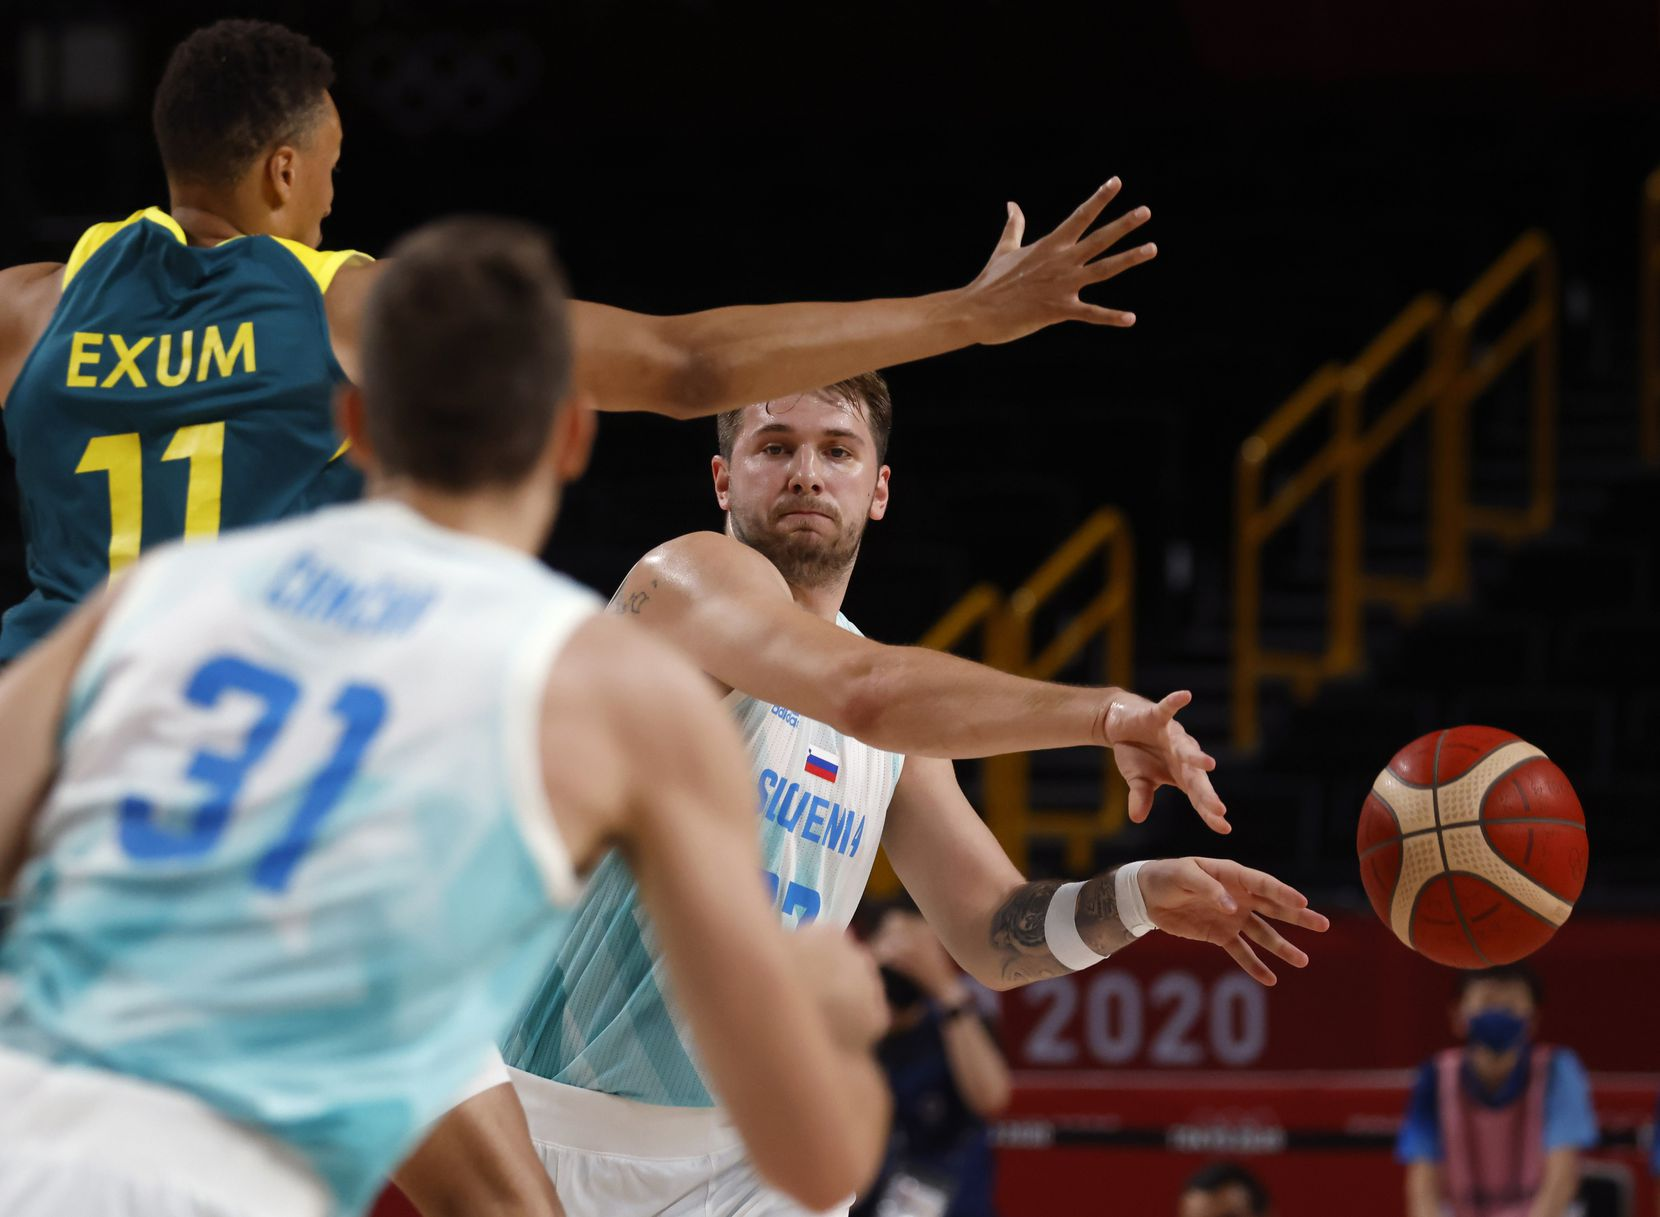 Slovenia's Luka Doncic (77) passes to Slovenia's Vlatko Cancar (31) as Australia's Dante Exum (11) defends during the first quarter of play in the bronze medal basketball game at the postponed 2020 Tokyo Olympics at Saitama Super Arena, on Saturday, August 7, 2021, in Saitama, Japan. (Vernon Bryant/The Dallas Morning News)